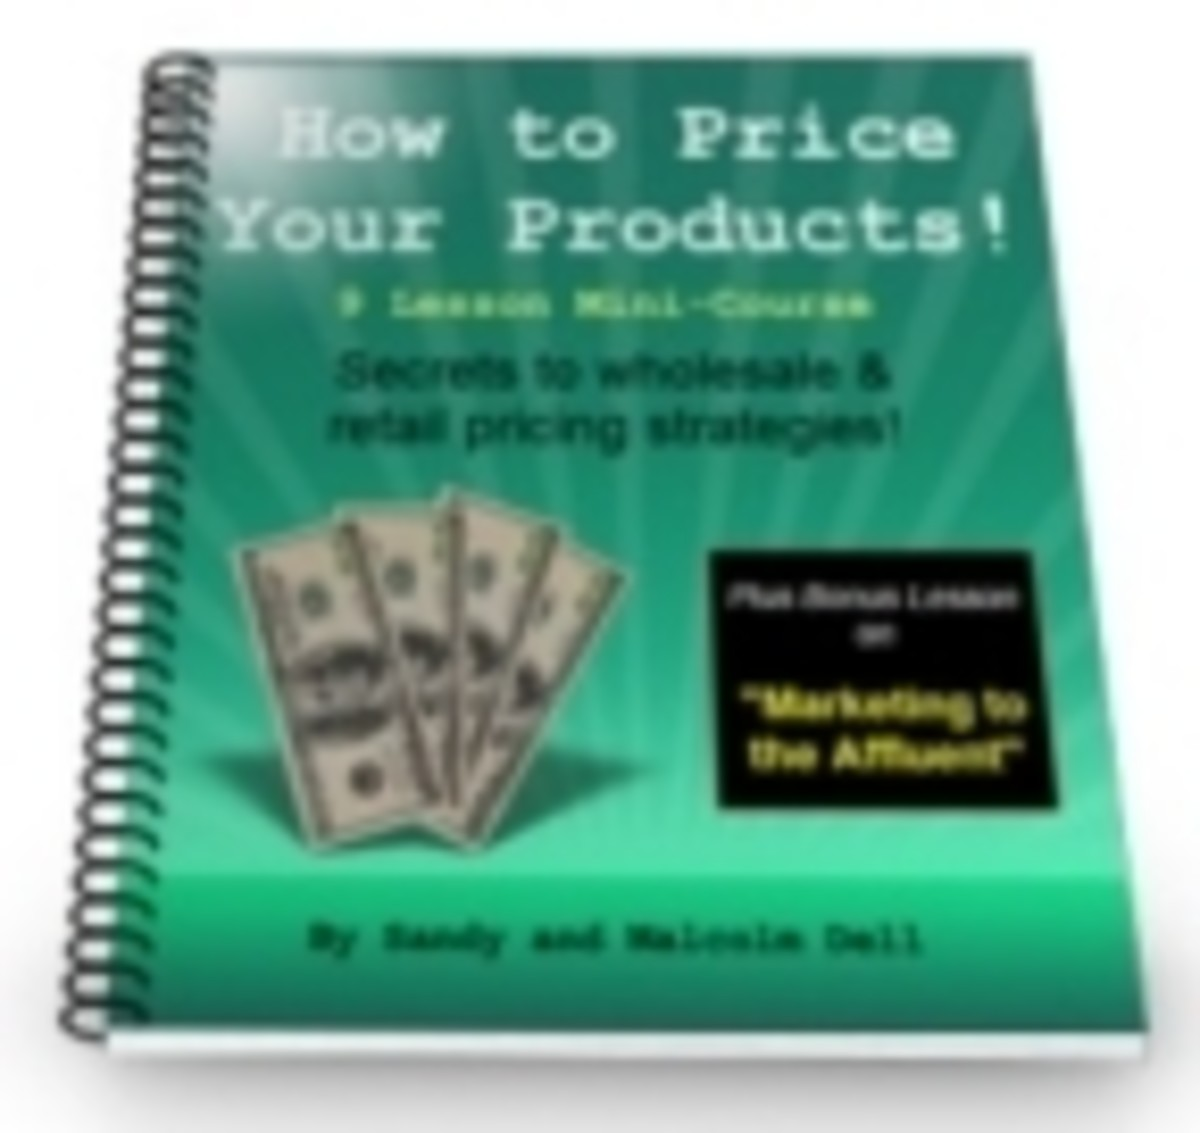 ricing Your Products E-Course